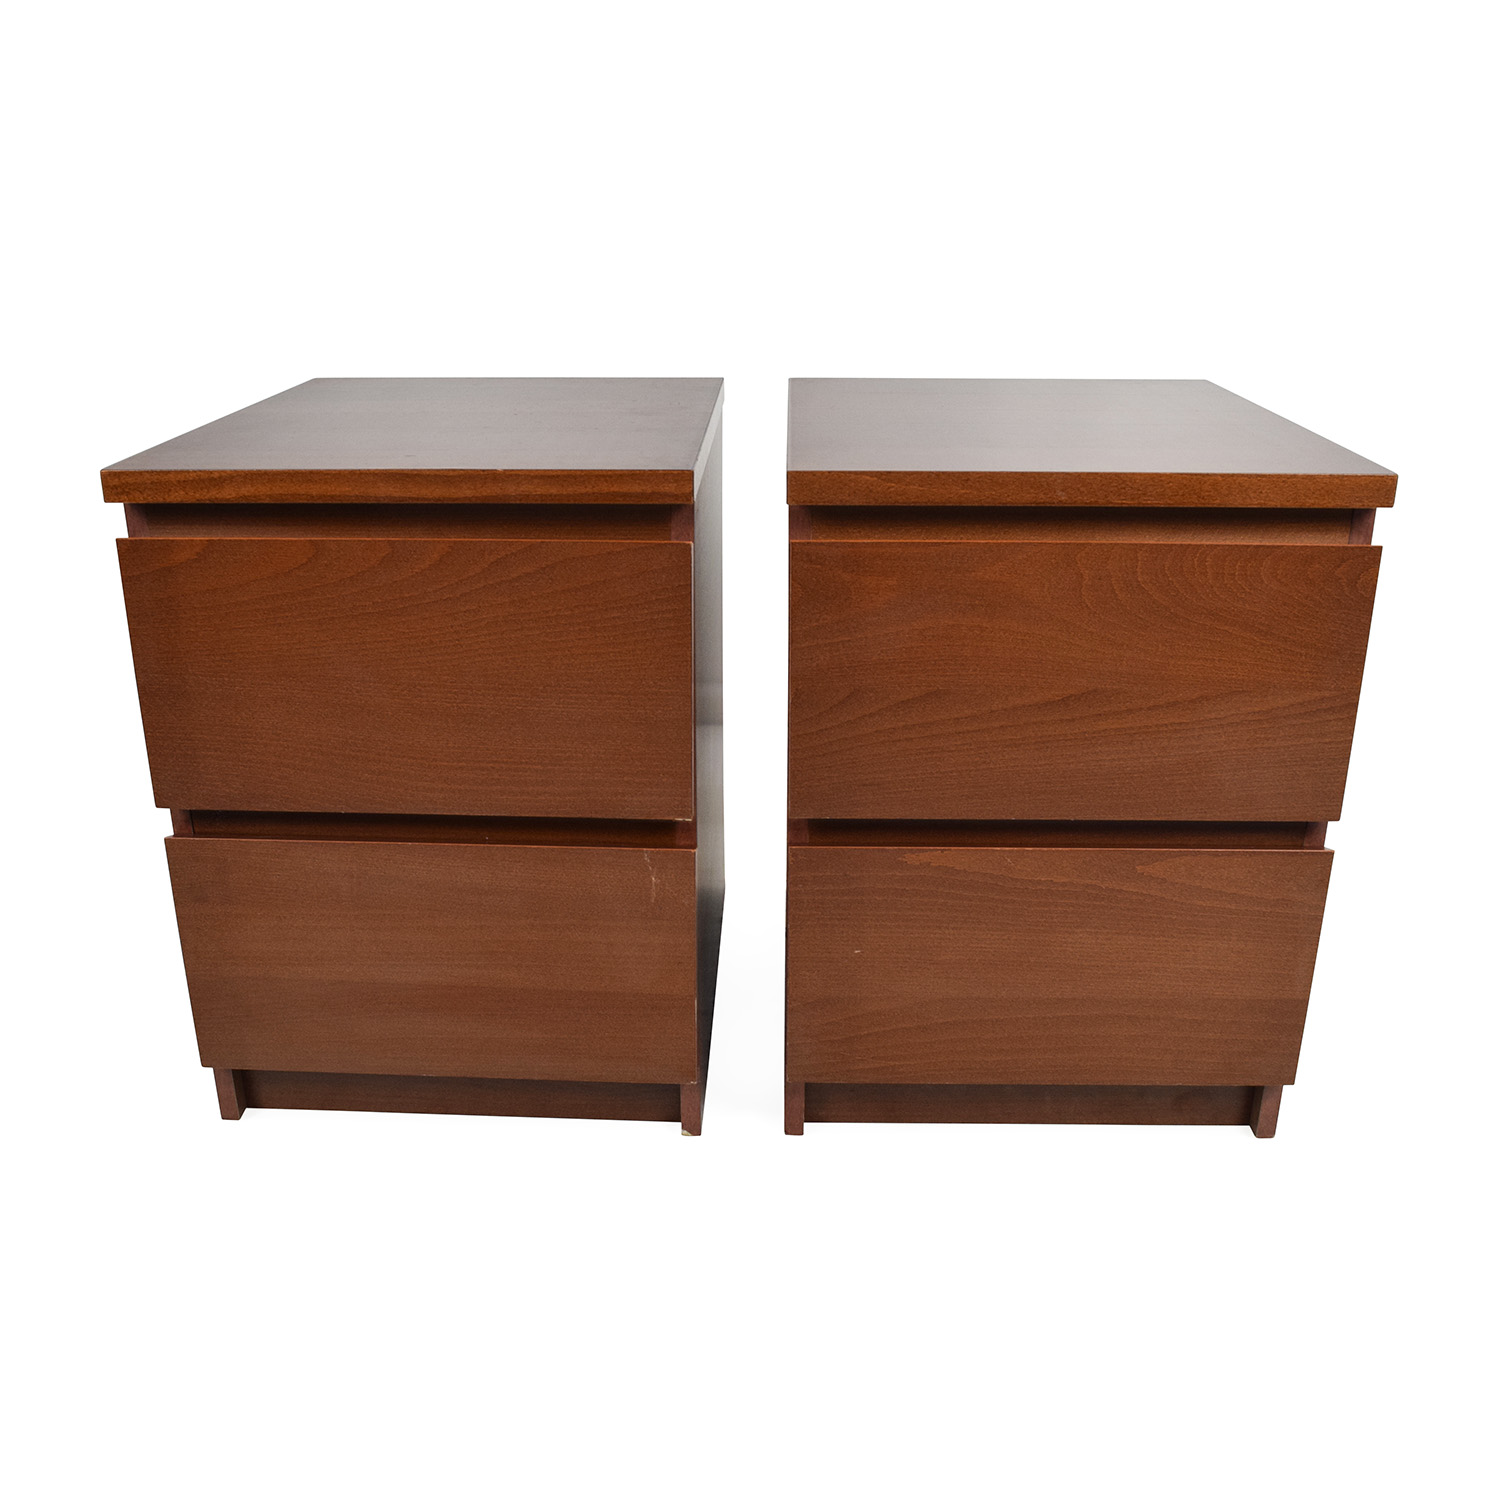 buy IKEA Malm Dresser Set IKEA